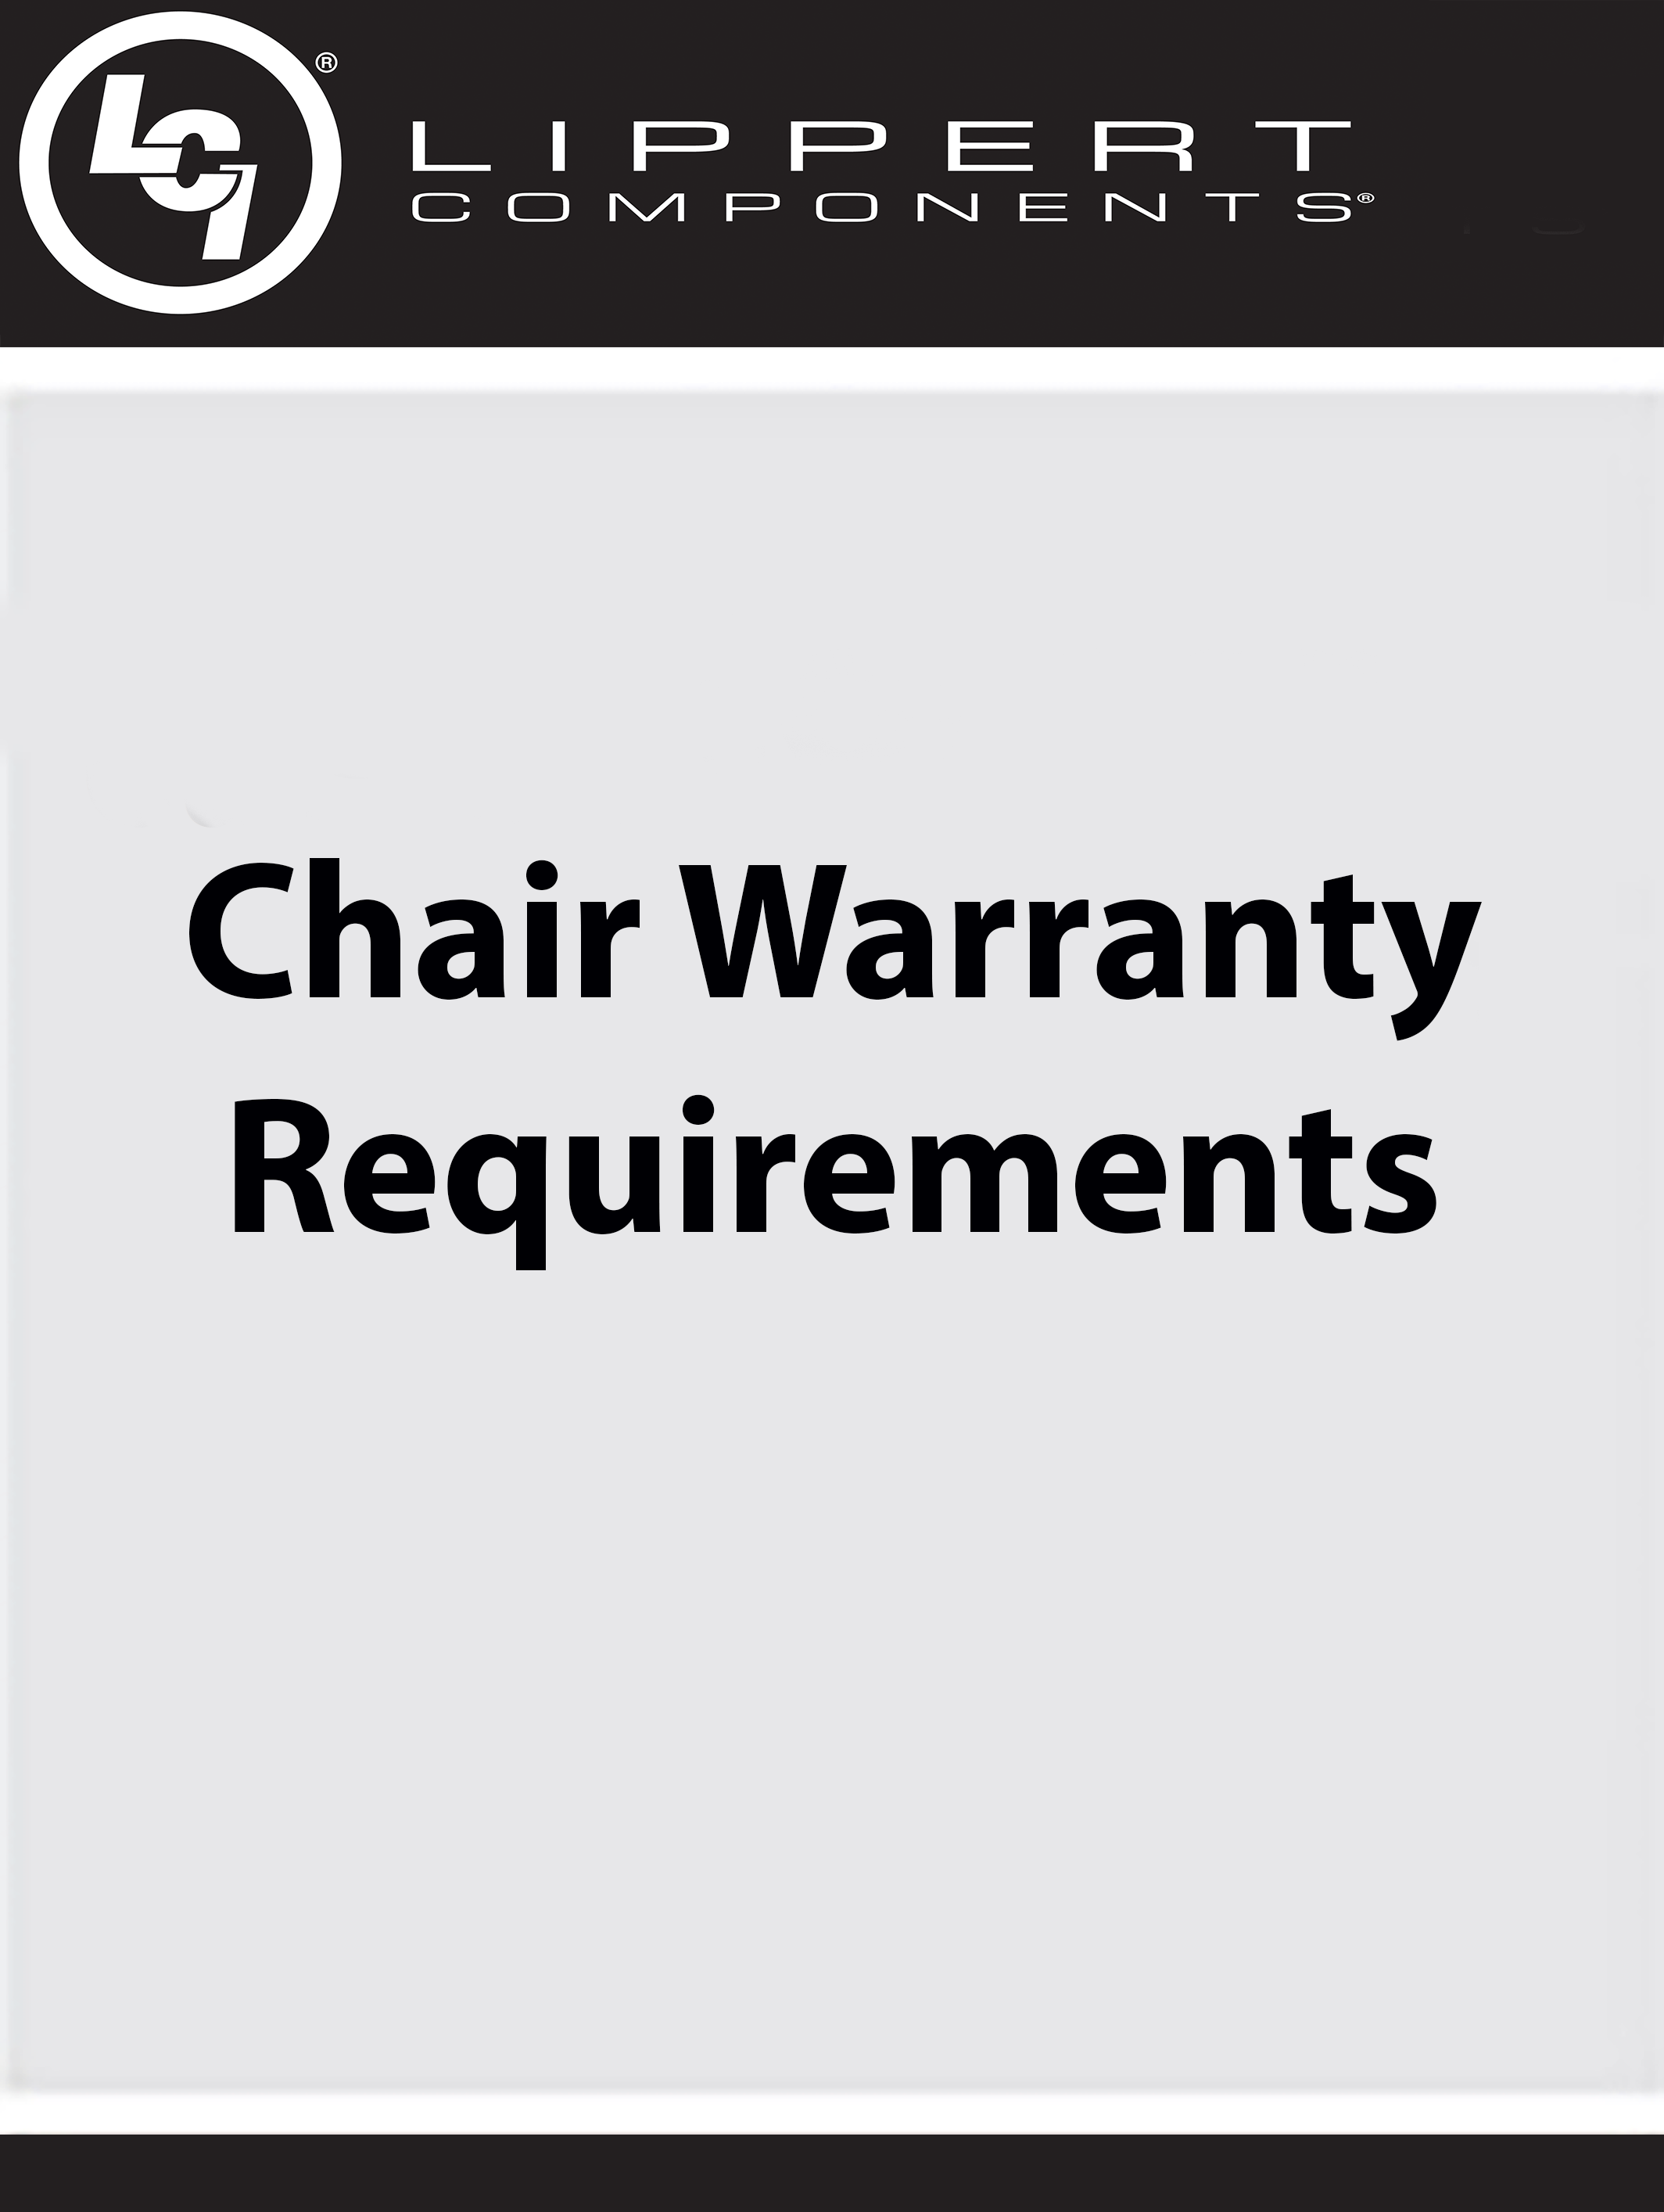 Chair Warranty Requirements